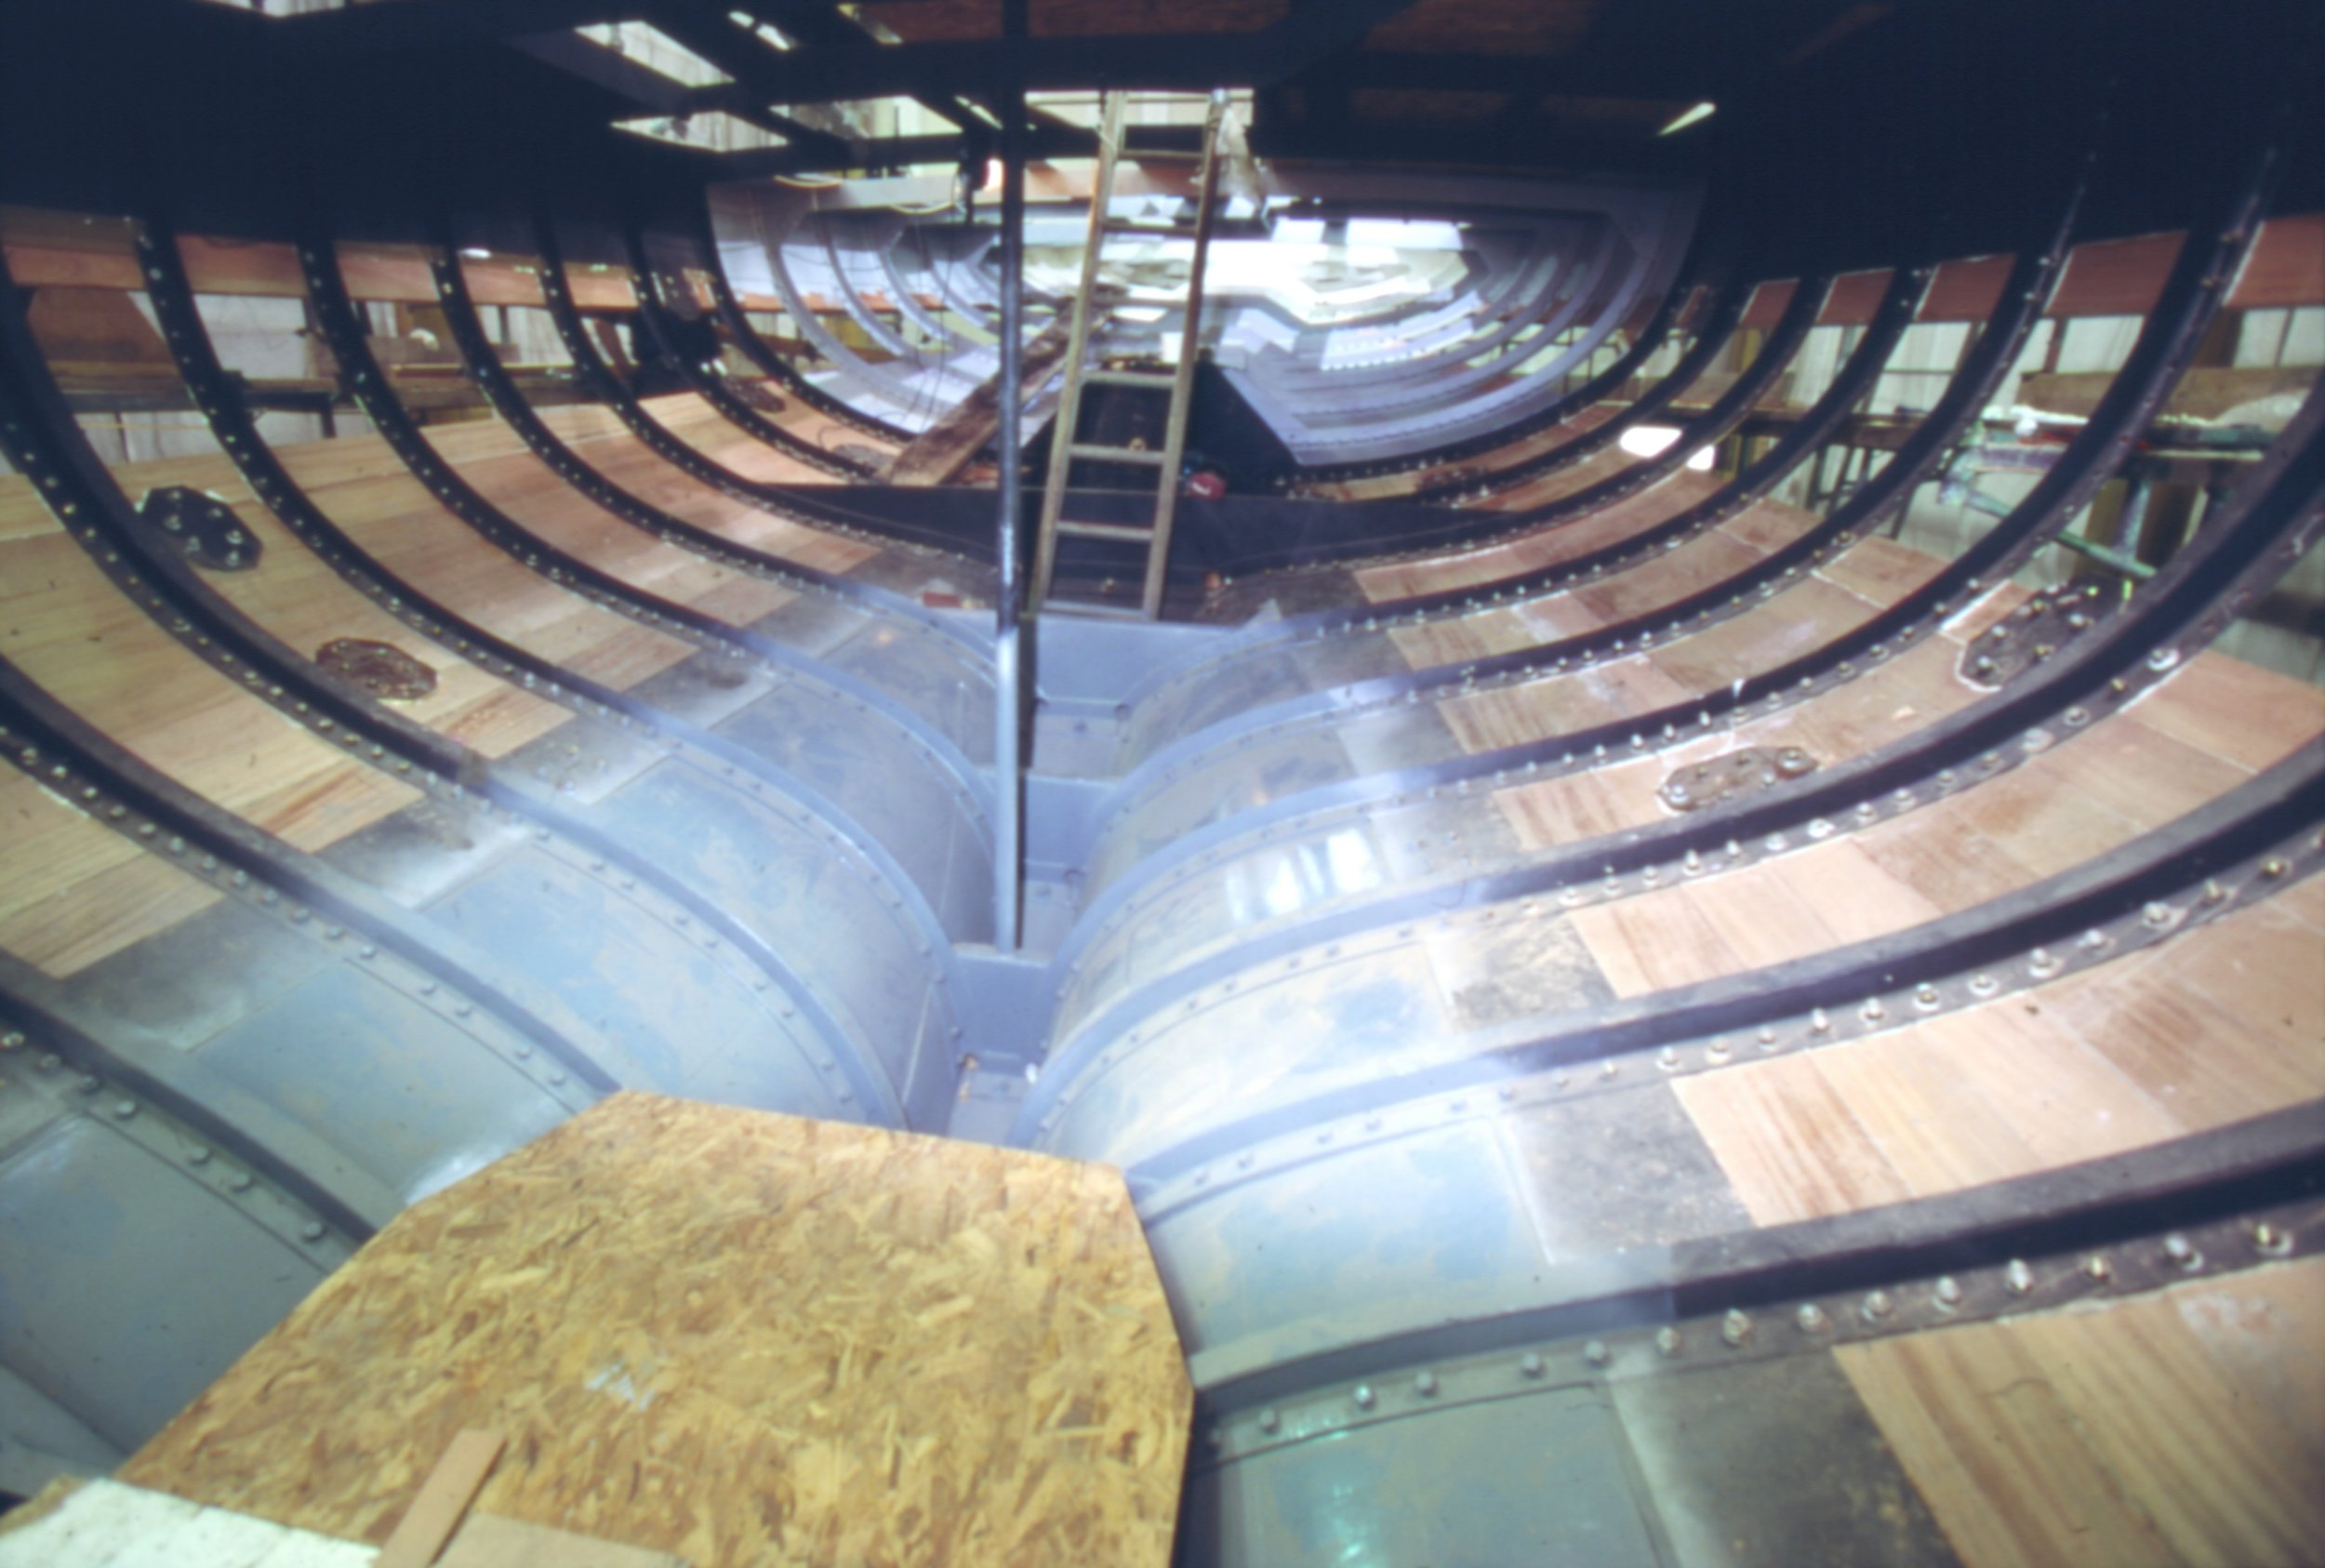 Fife designed the Lady Anne undergoing restoration at Fairlie Yachts